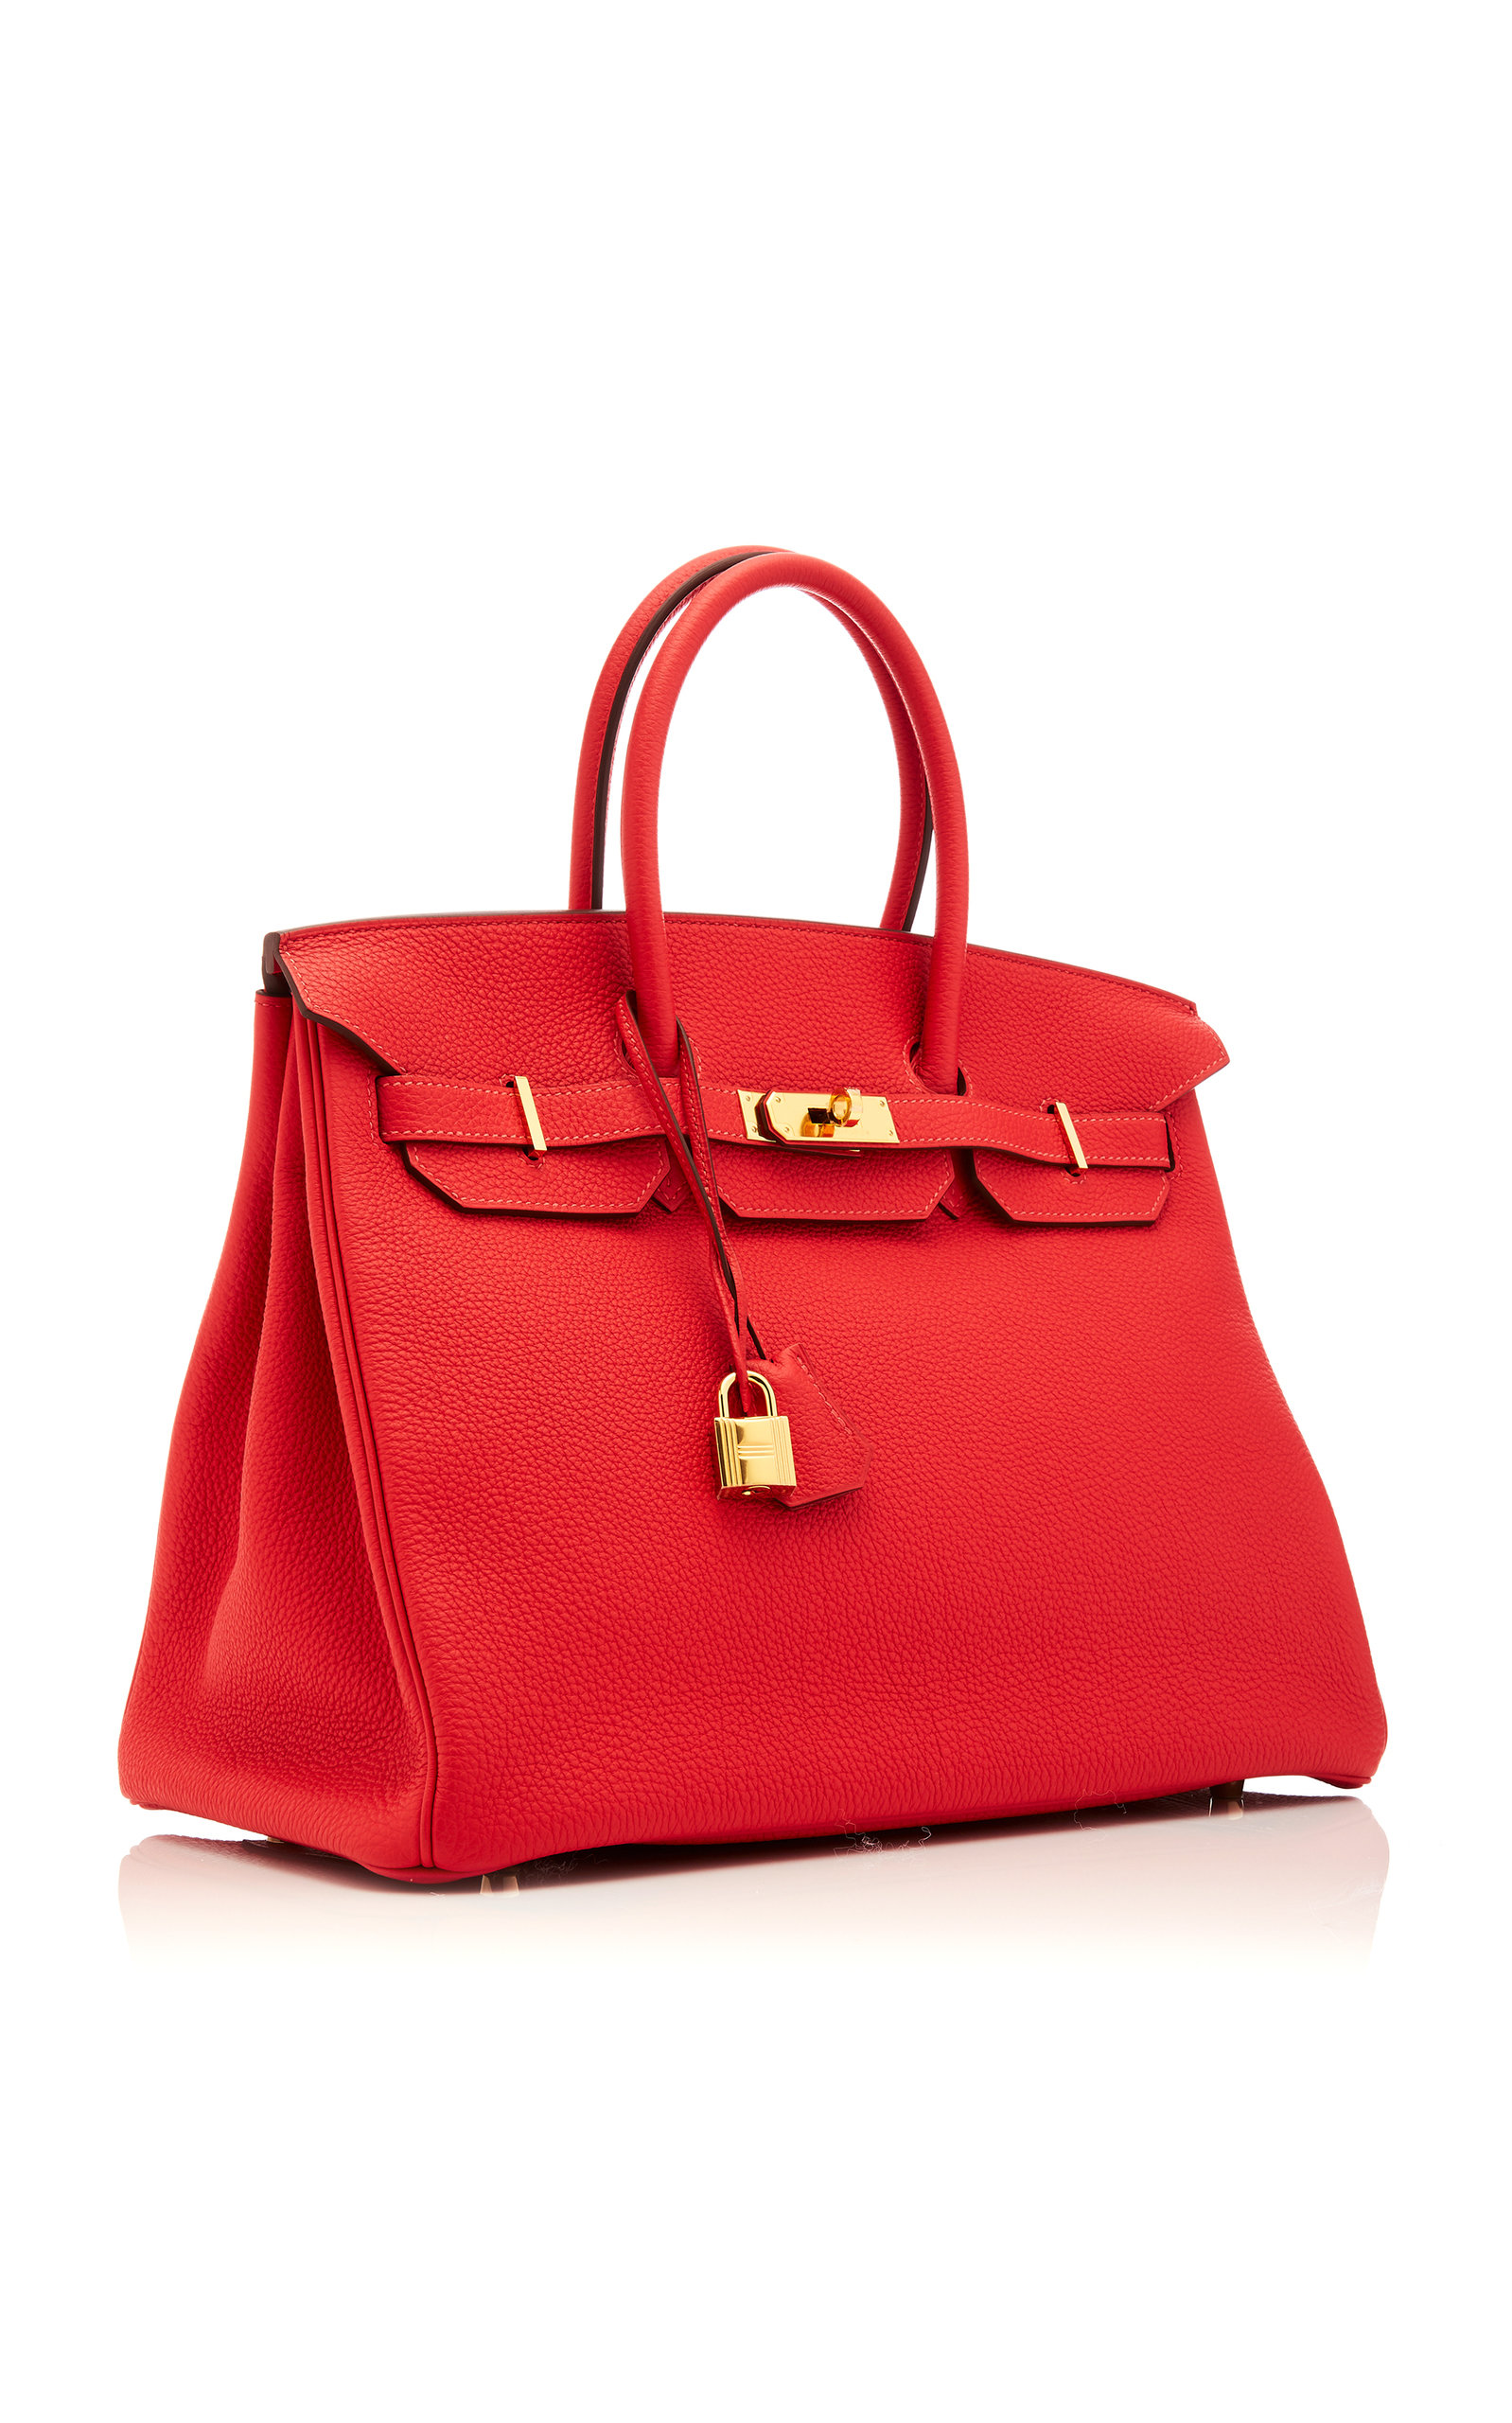 34460eed1e Hermès Vintage by Heritage AuctionsHermès 35cm Rouge Pivoine Togo Leather  Birkin. CLOSE. Loading. Loading. Loading